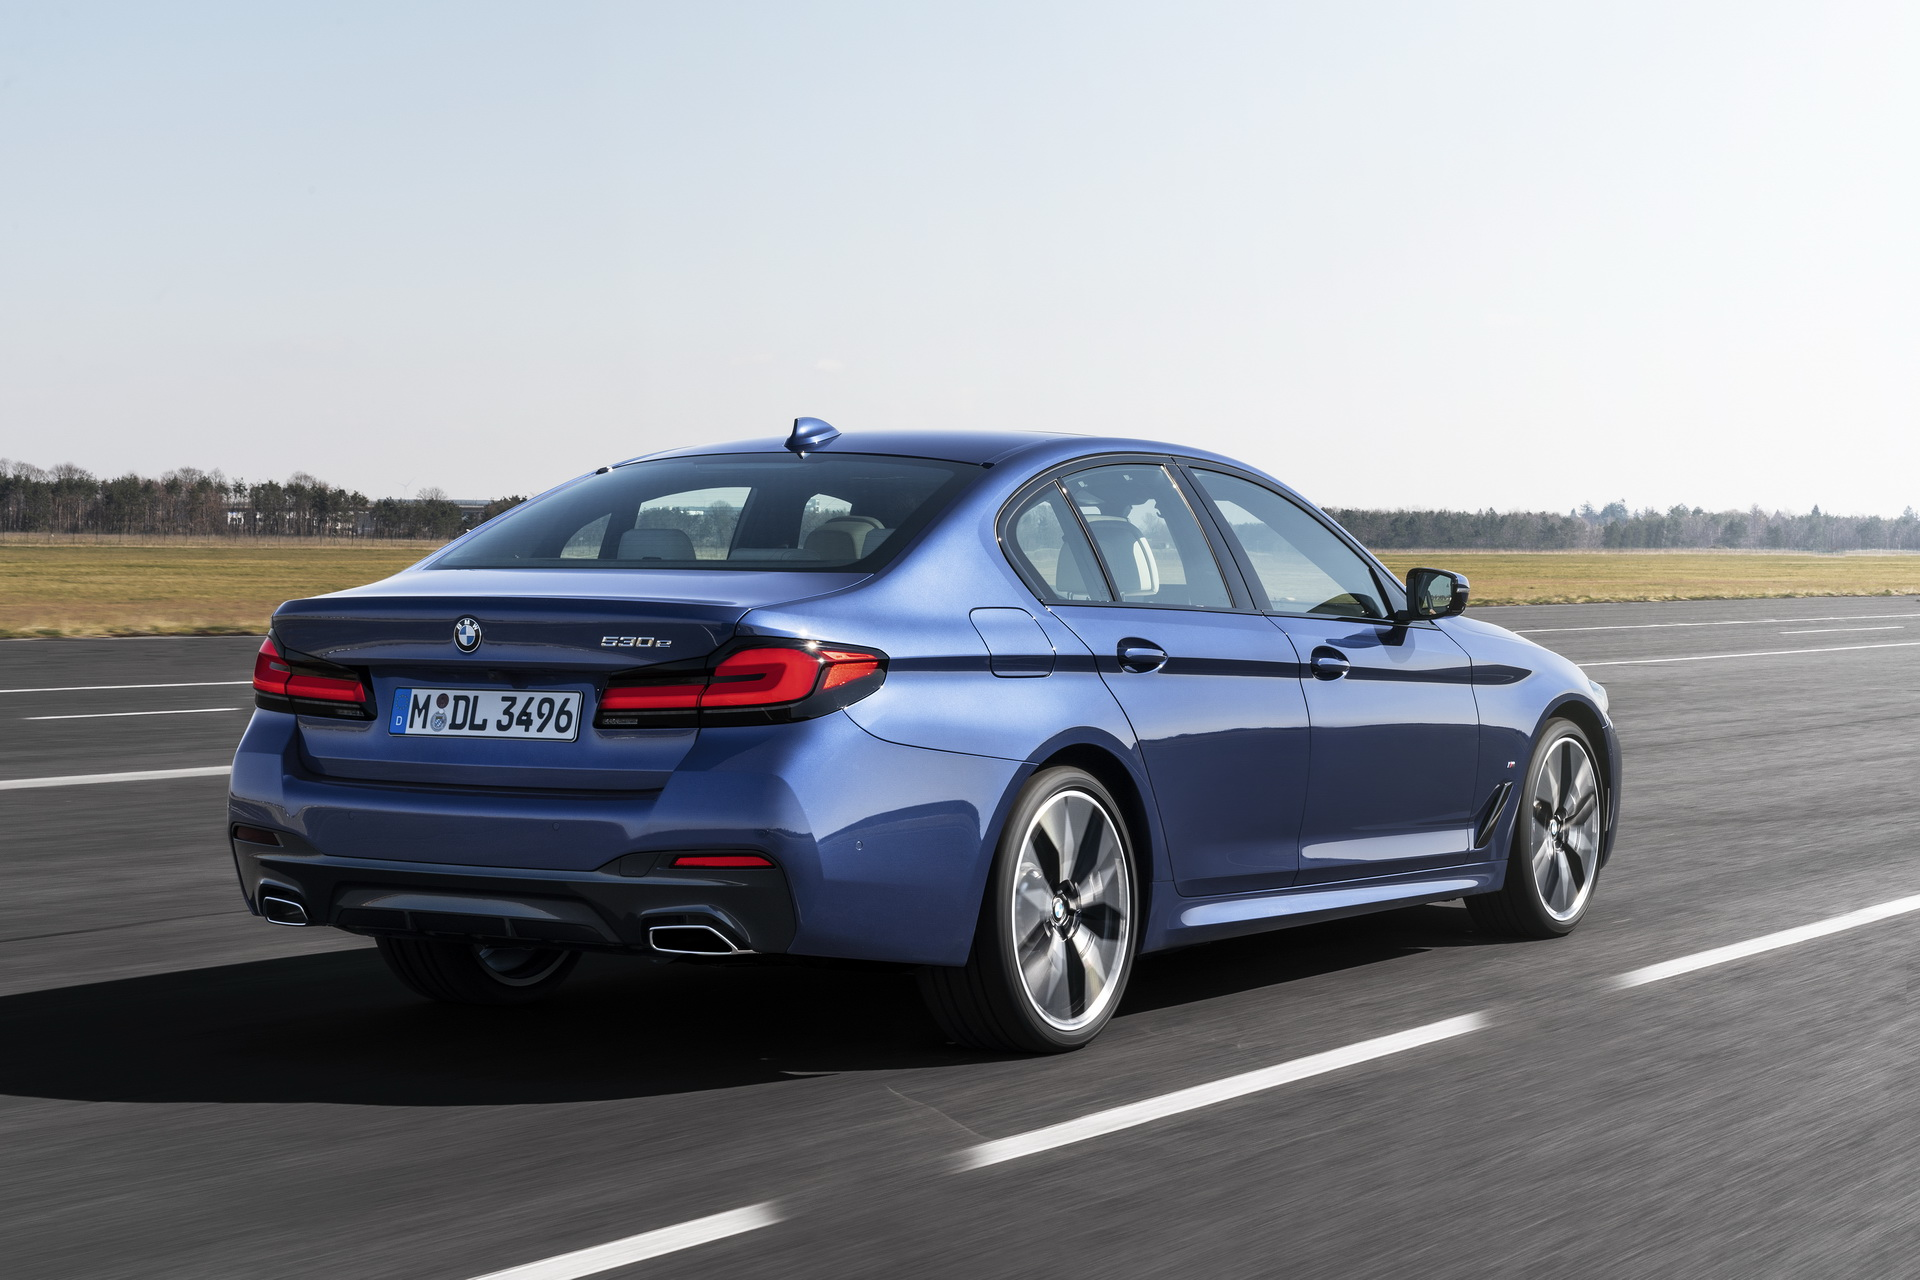 Check Out The 2021 Bmw 5 Series Facelift From Every Angle In 185 Photos And Videos Carscoops